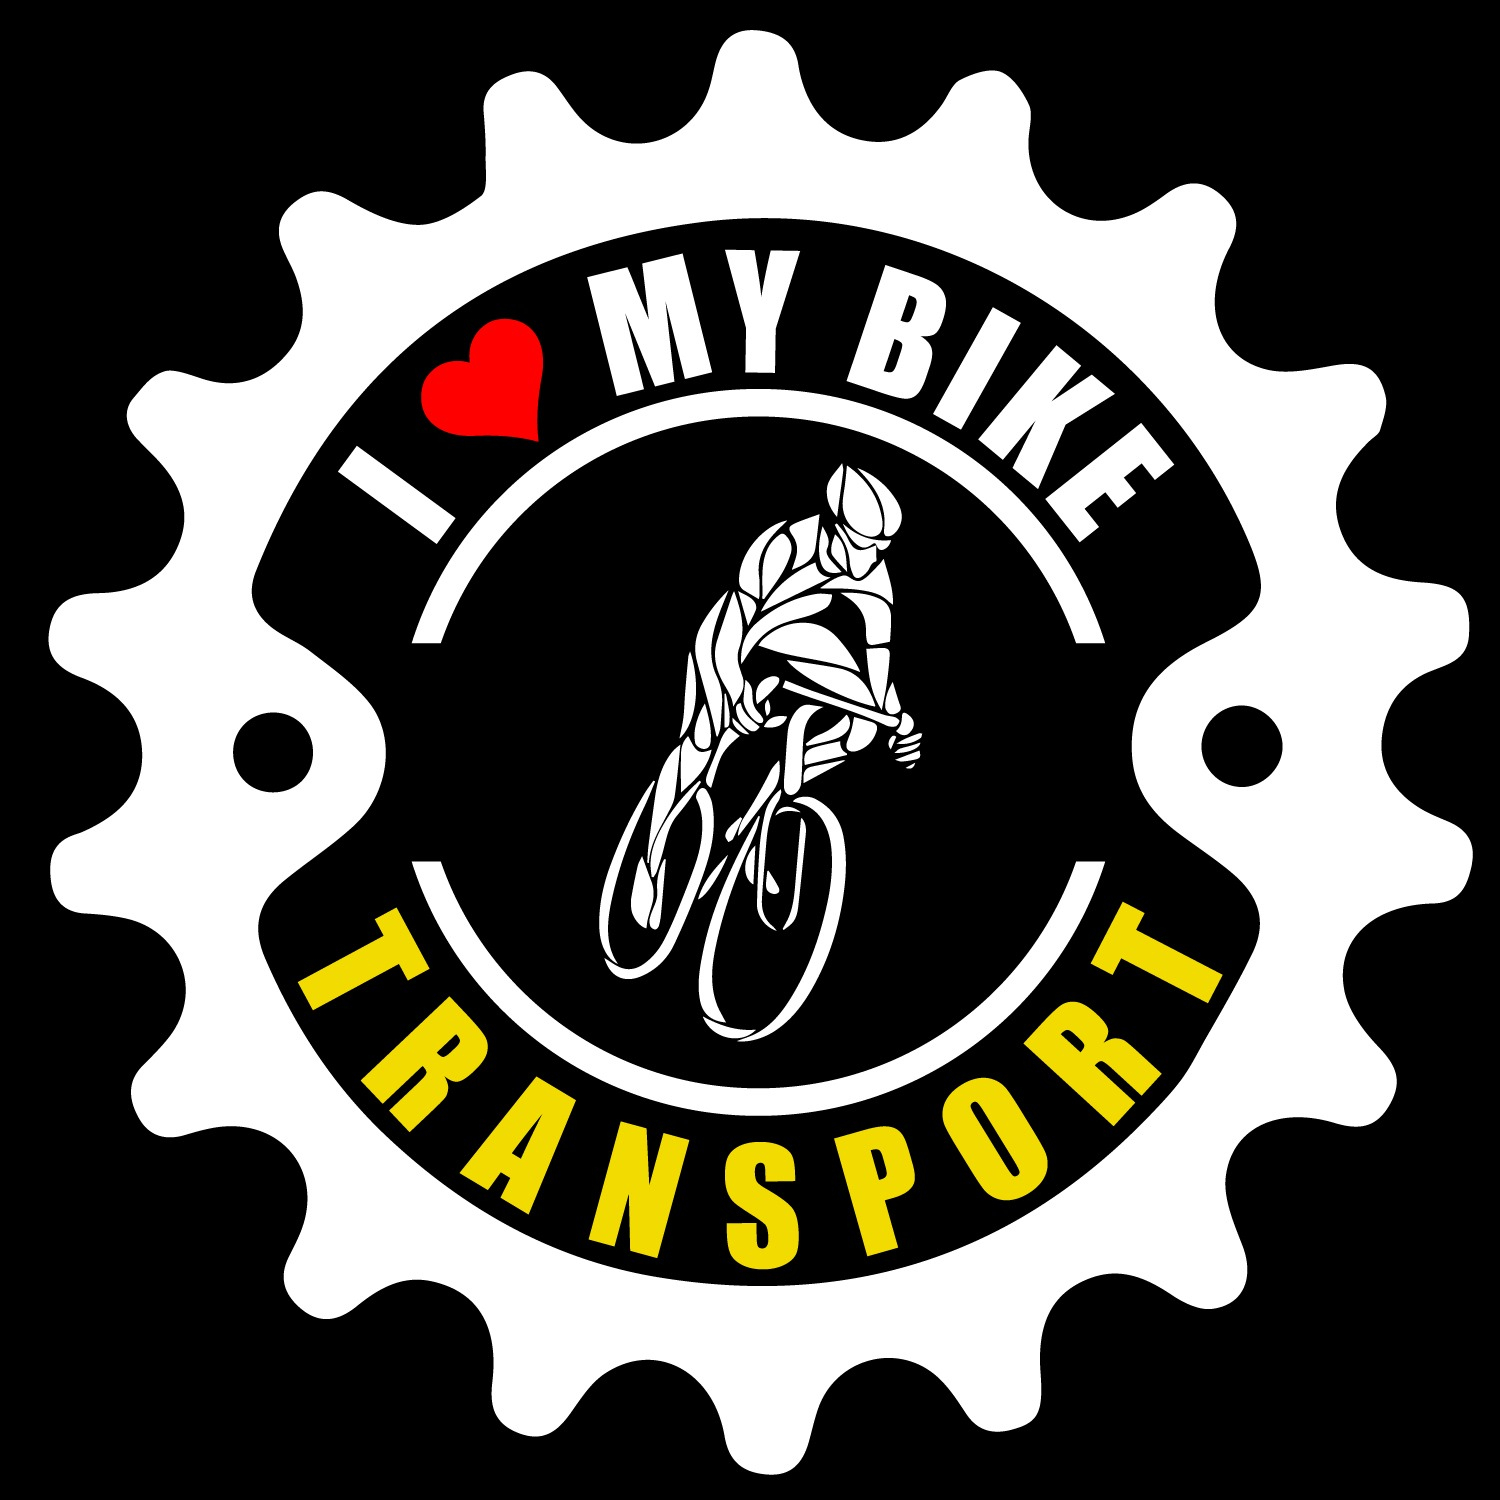 i-love-my-bike-logo